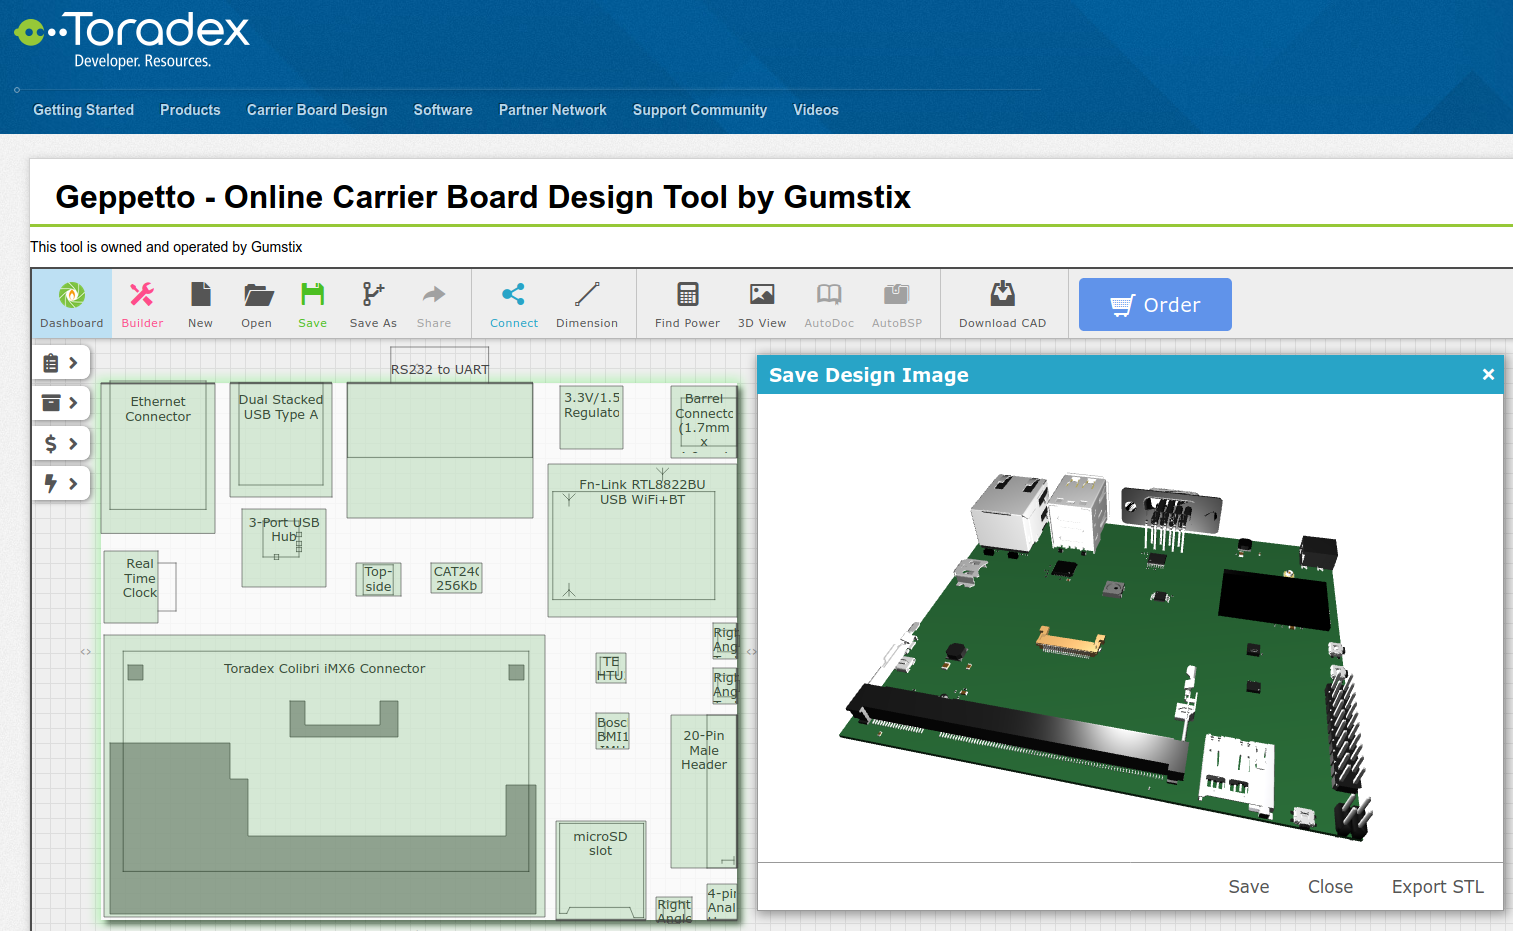 Embedded directly in the Toradex website, Geppetto generates EagleCAD, .BRD and .SCH files of customized Toradex designs